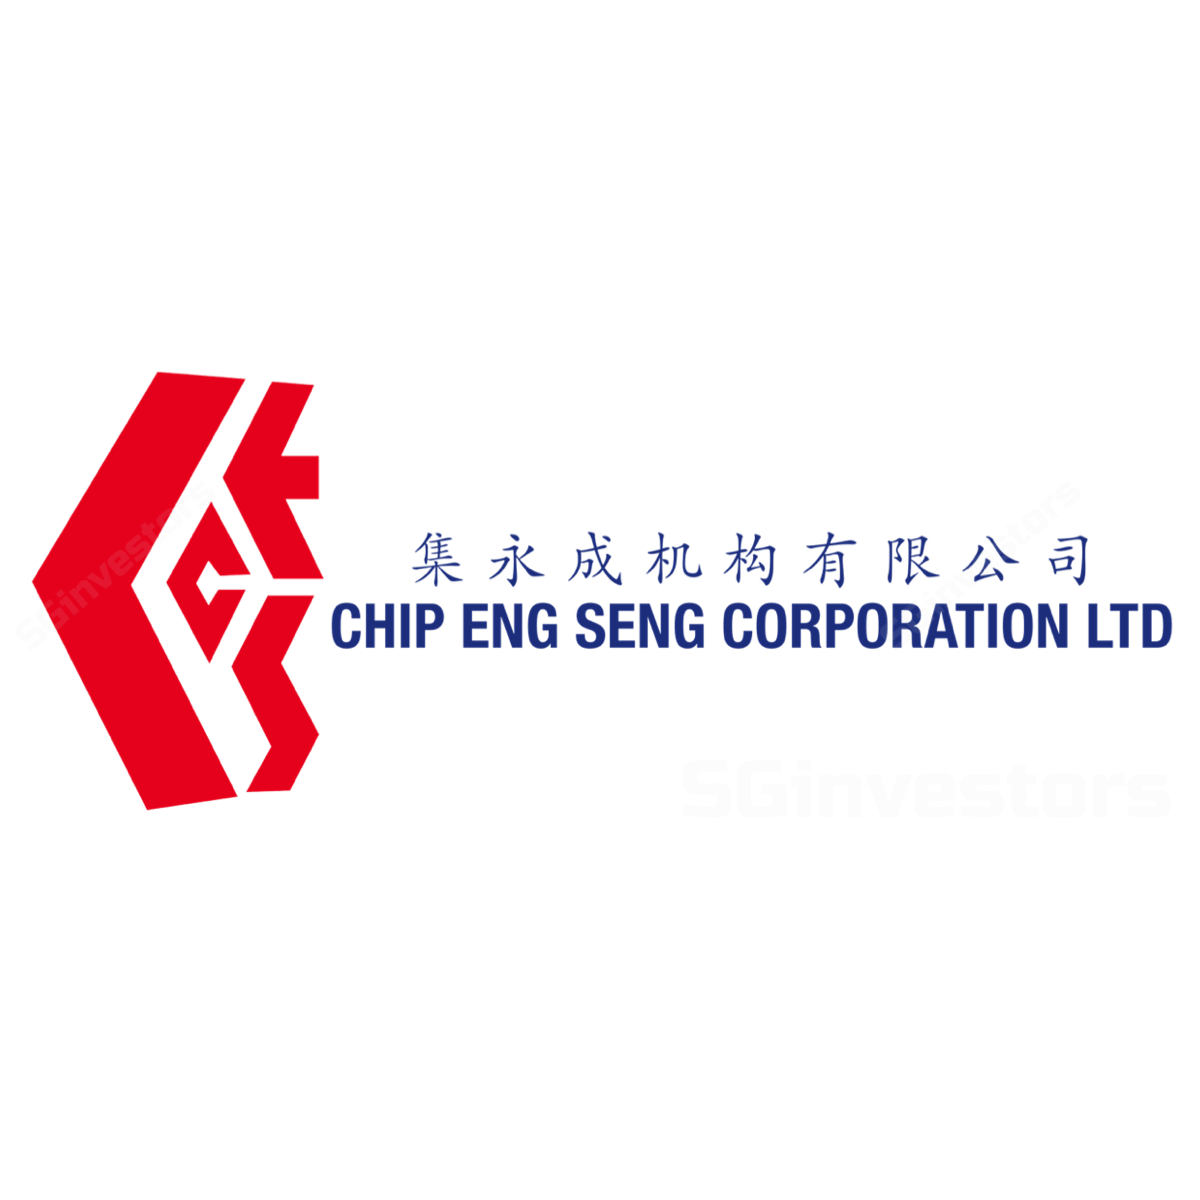 Chip Eng Seng (CHIP SP) - DBS Vickers 2018-02-01: Expansion In Order Book And Scope From New Contract Win